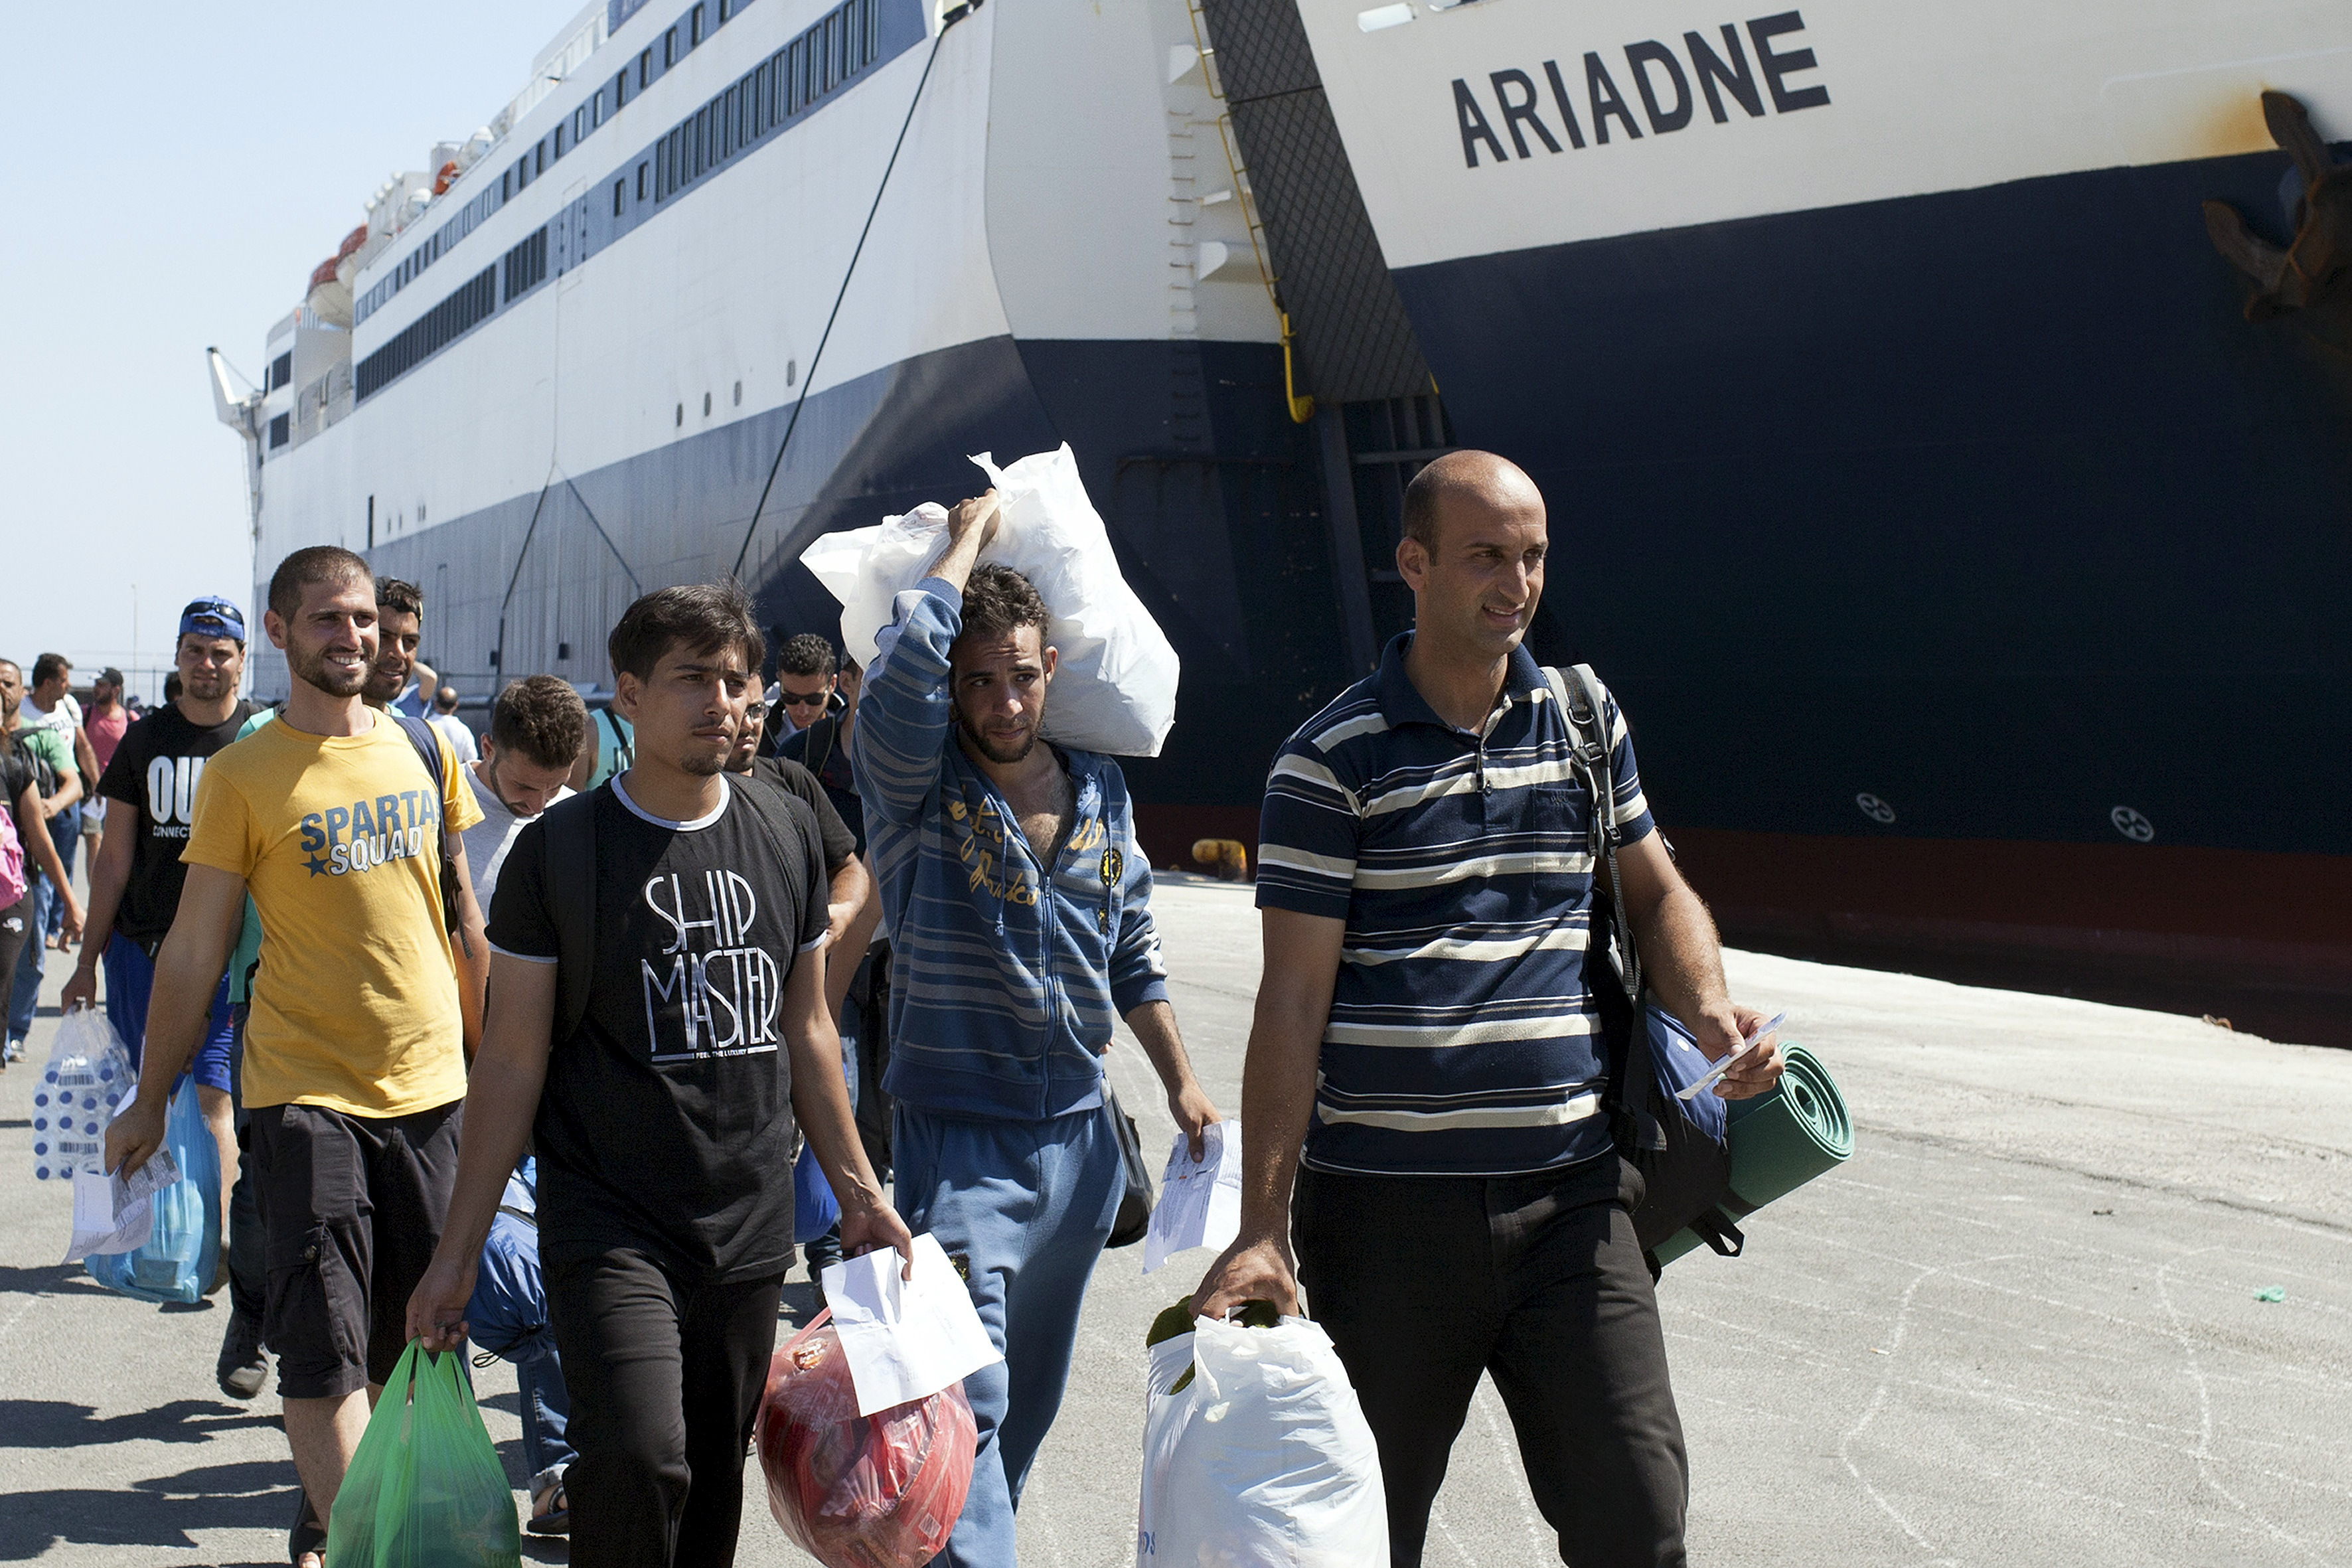 Refugees and migrants carry their belongings while boarding the passenger ship Tera Jet heading to the port of Piraeus, on the Greek island of Lesbos, on Sept. 1, 2015